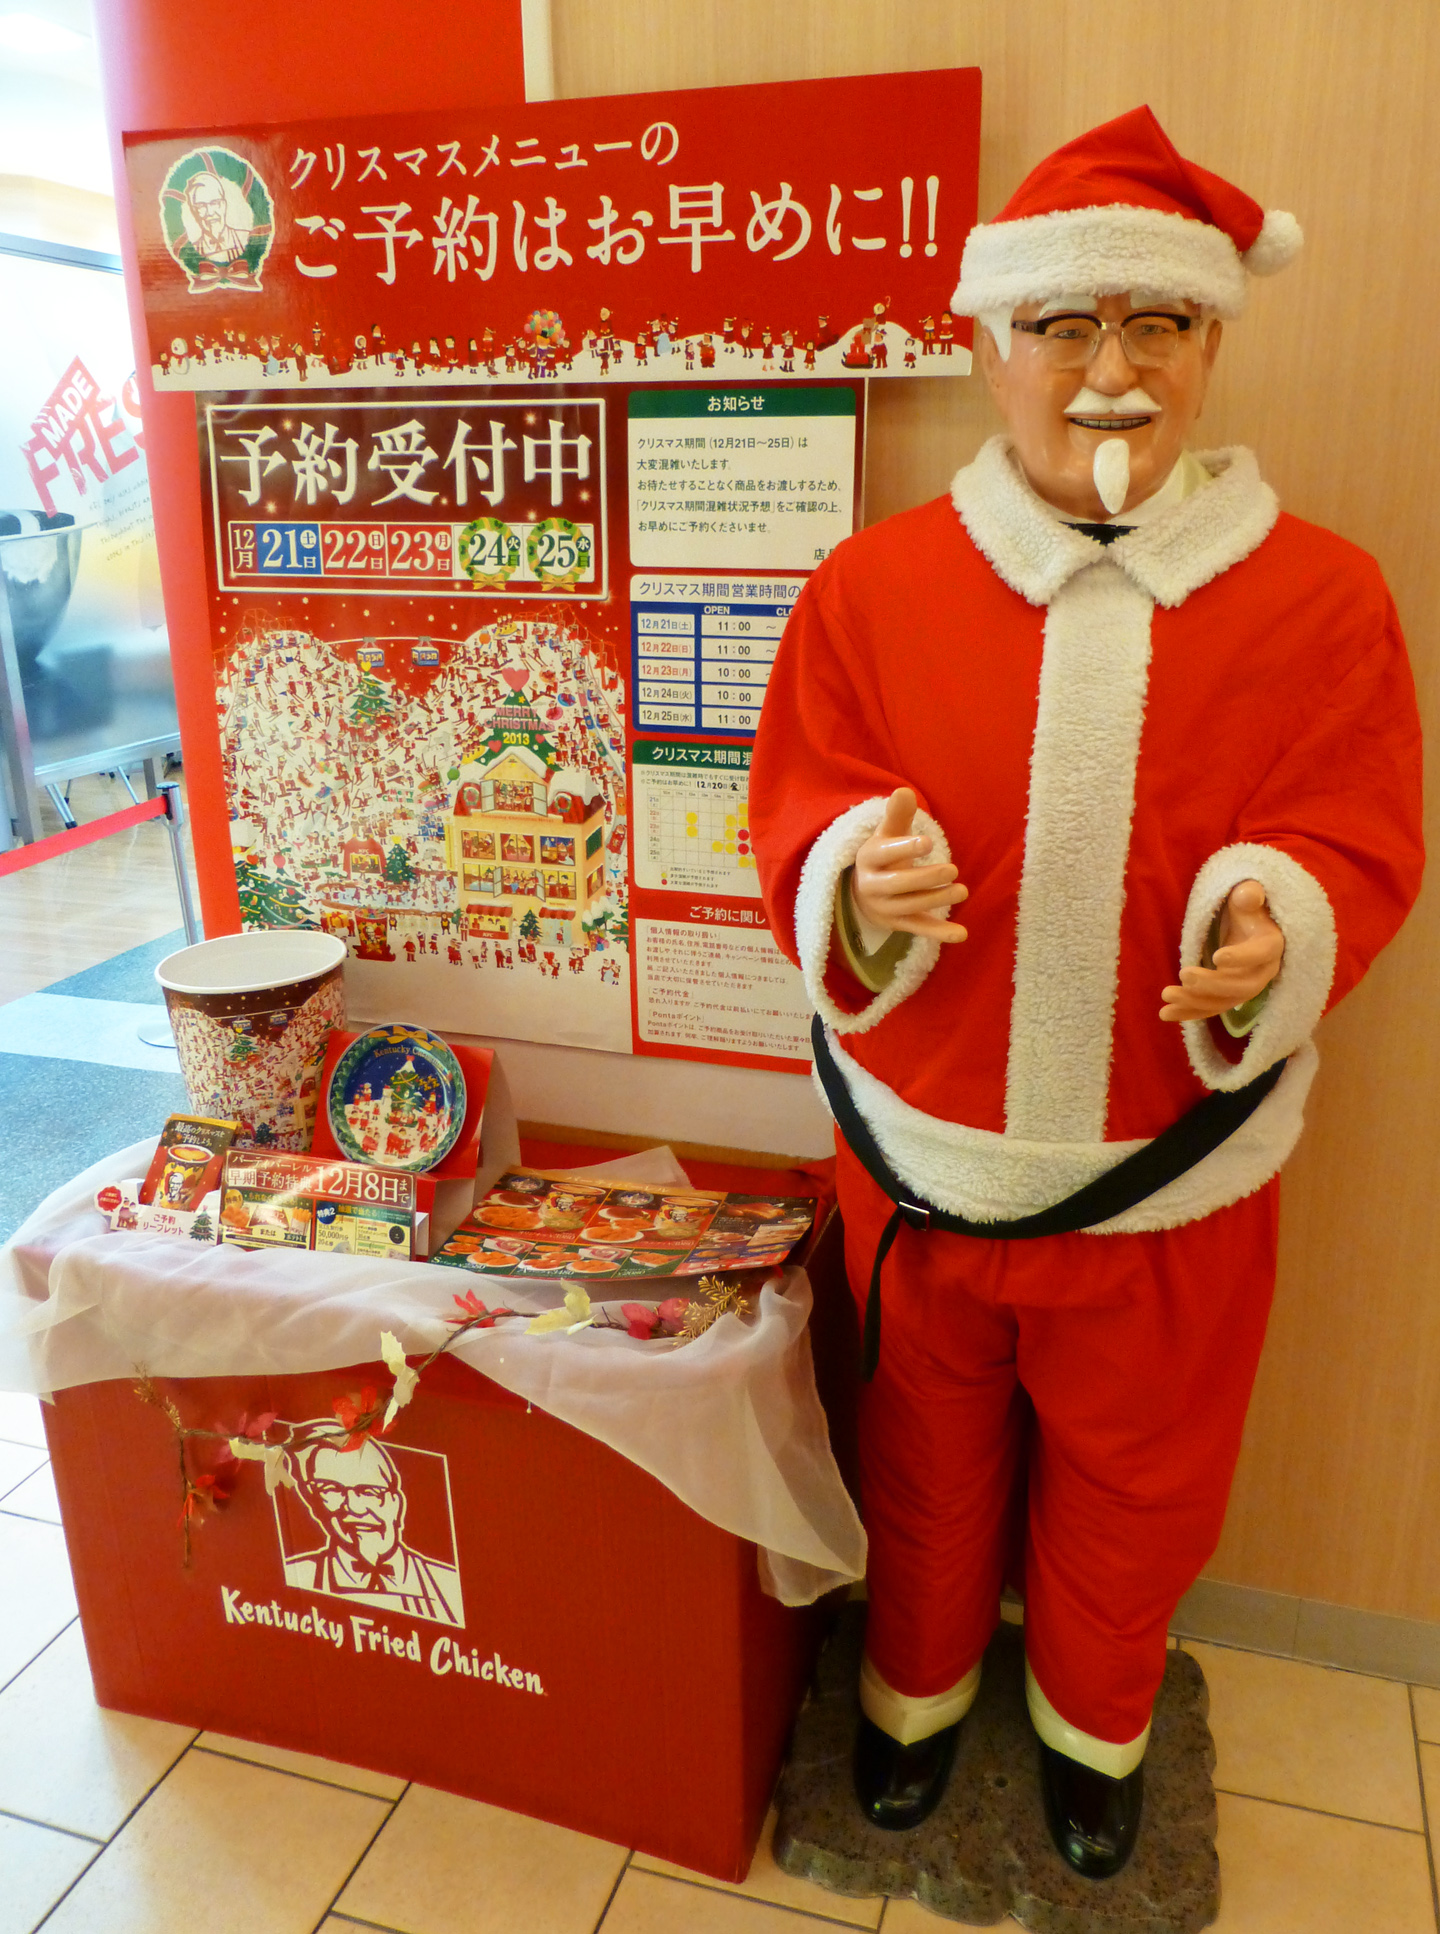 Kfc Japan Christmas.How To Spend Christmas In Japan Just Like Back Home